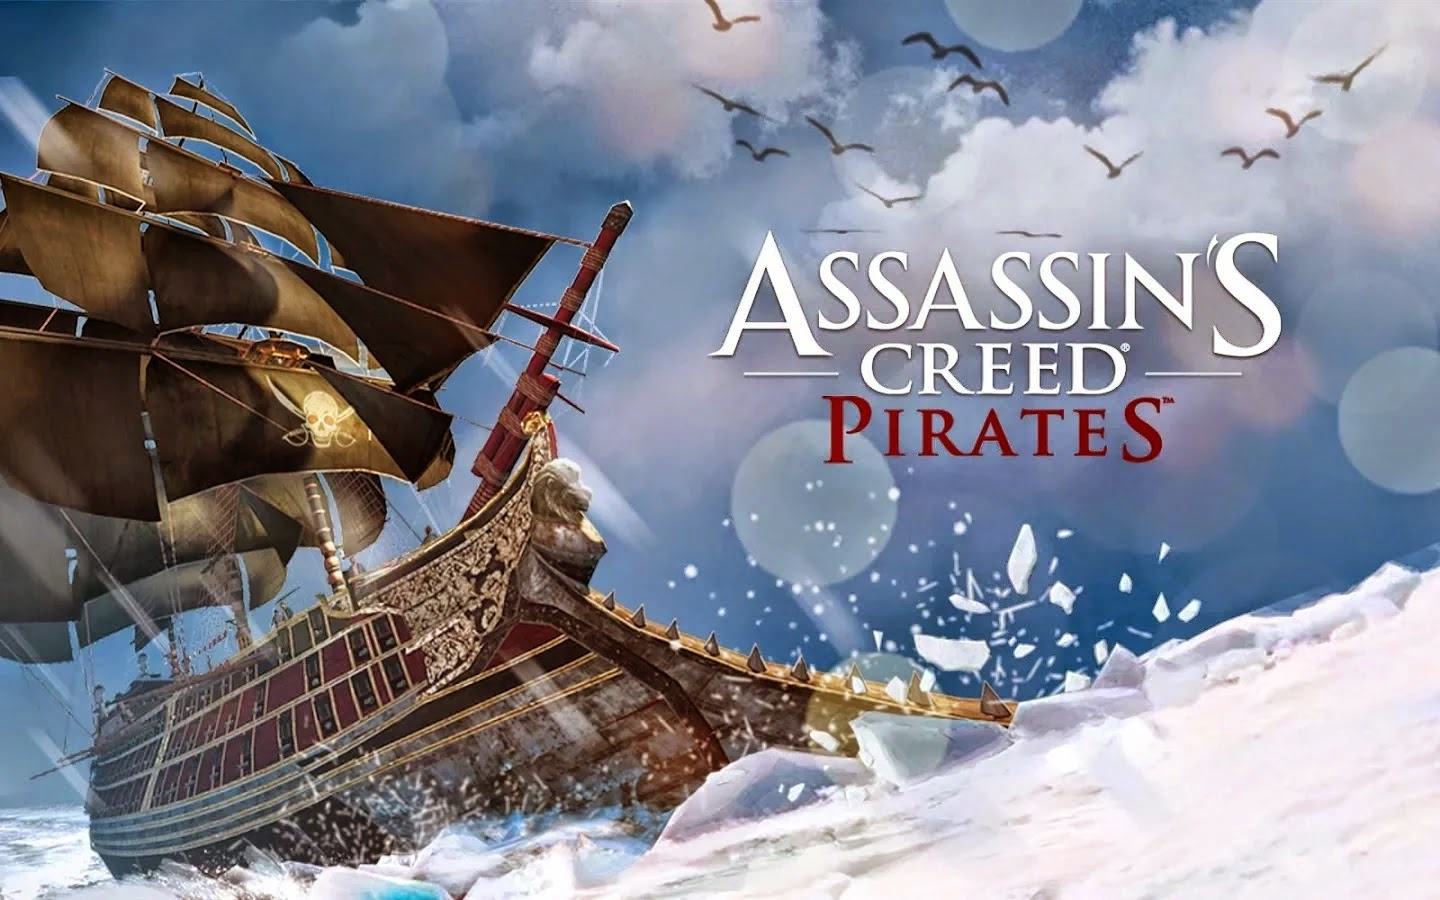 Assassin's Creed Pirates v1.6.0 APK Mod